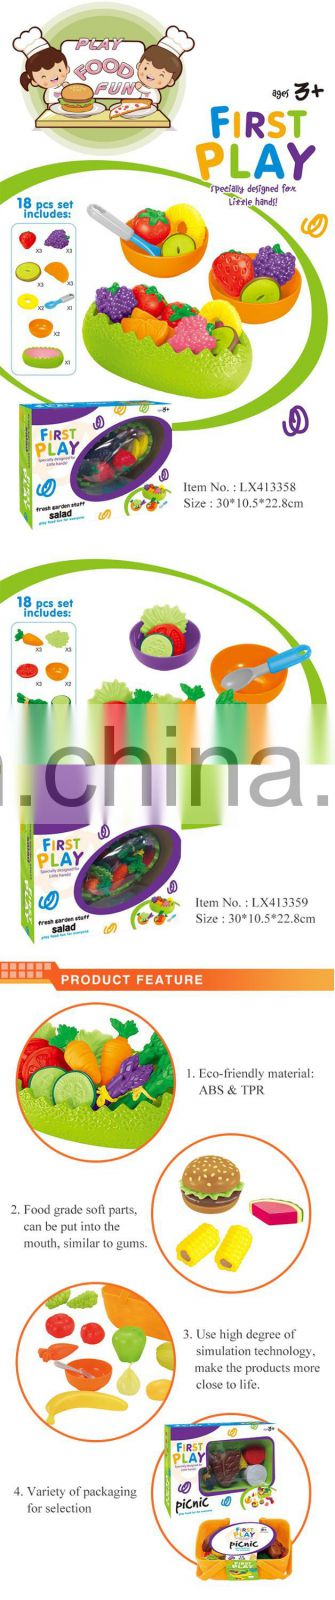 Play Food Kids Plastic Vegetable Fruit For Pertend Game